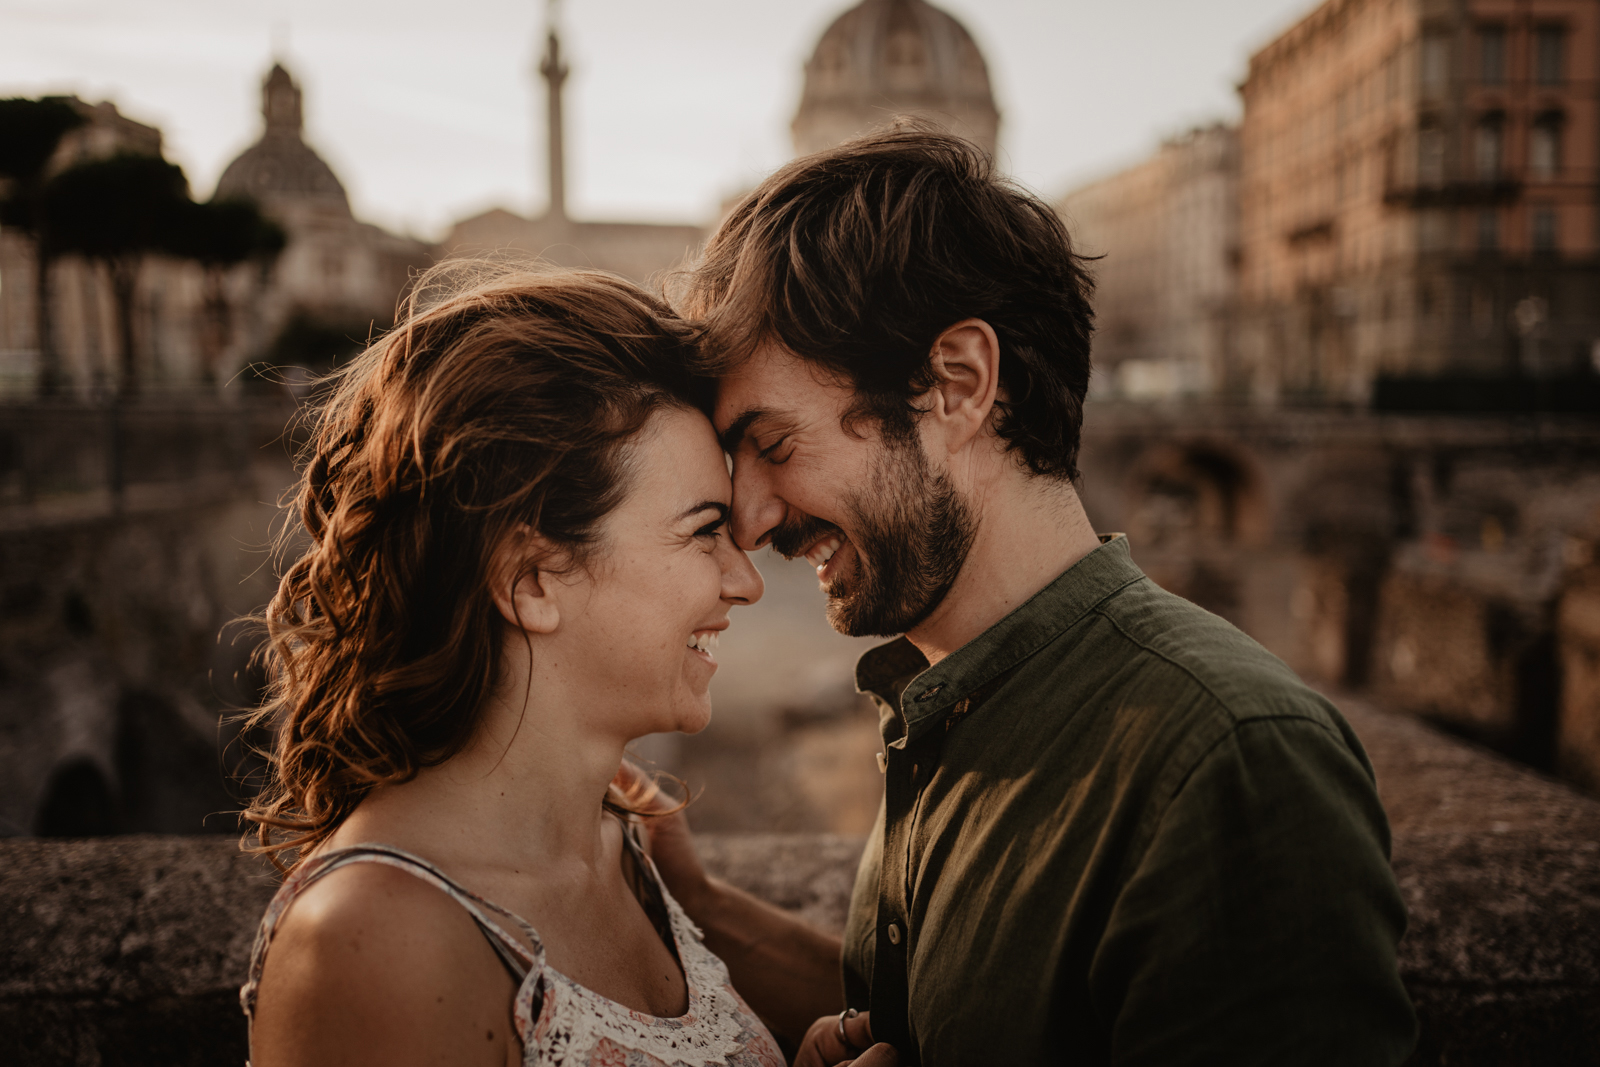 Rome Lovers by Michael Zennaro